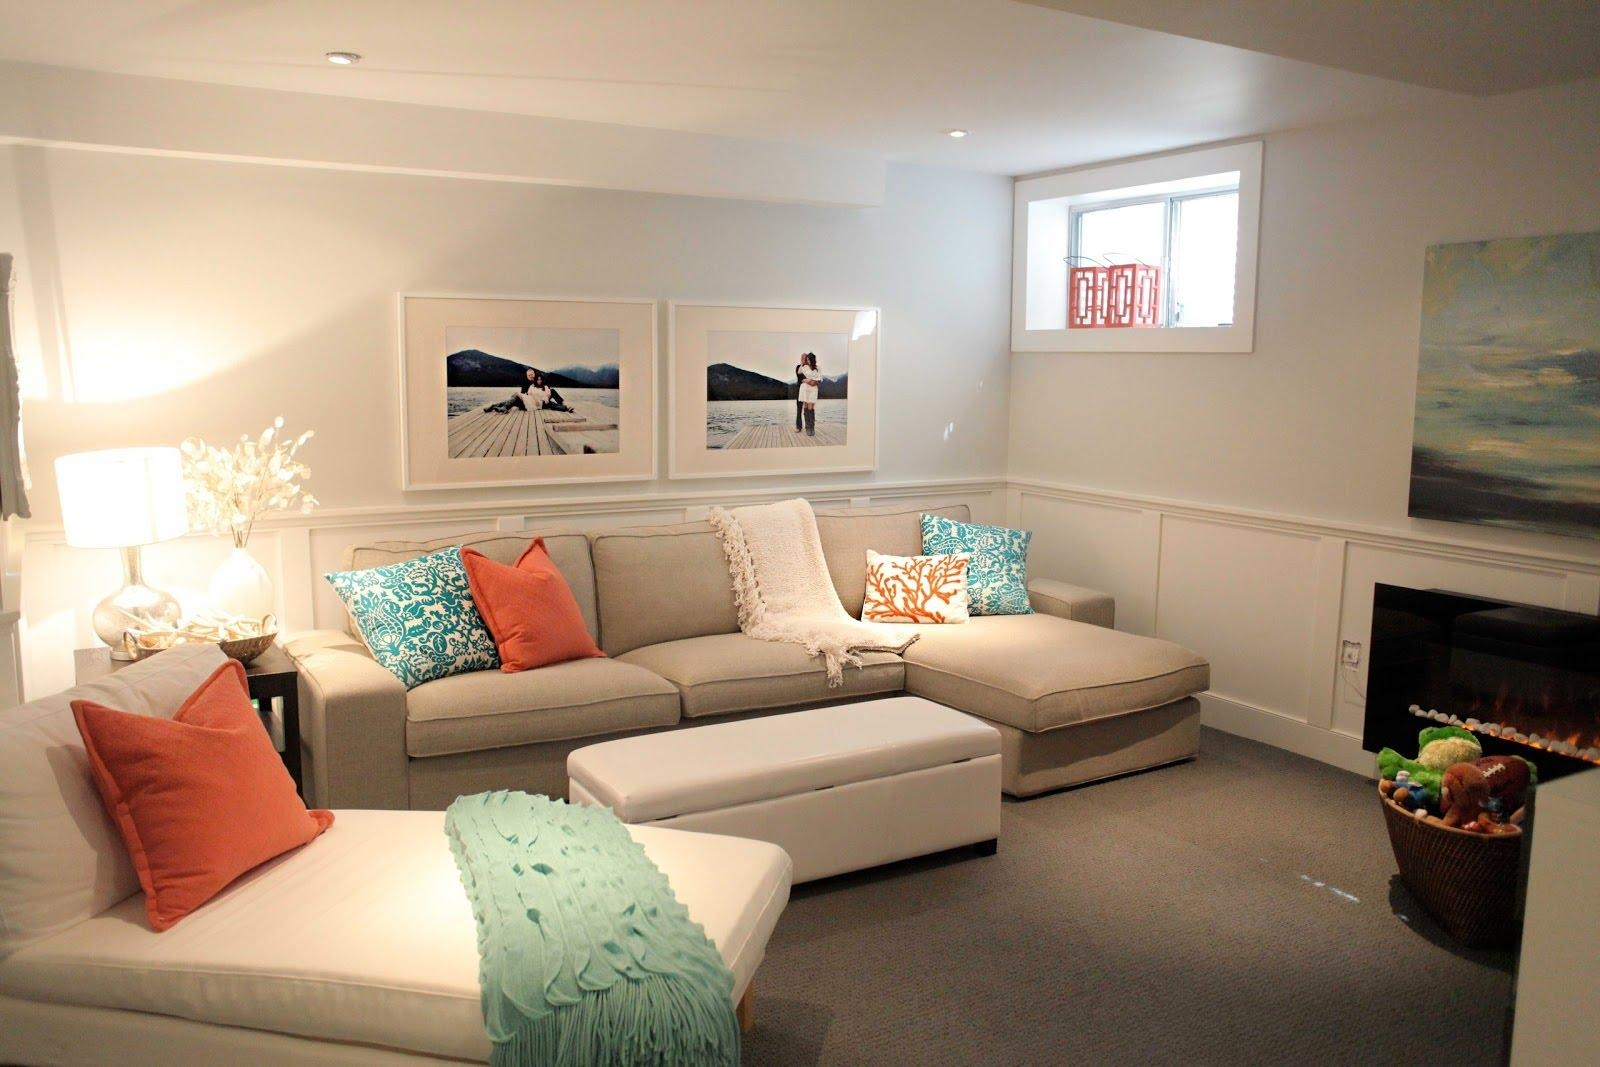 Sofa For Small Space Living Room Ideas – Youtube For Small Lounge Sofas (Image 15 of 20)